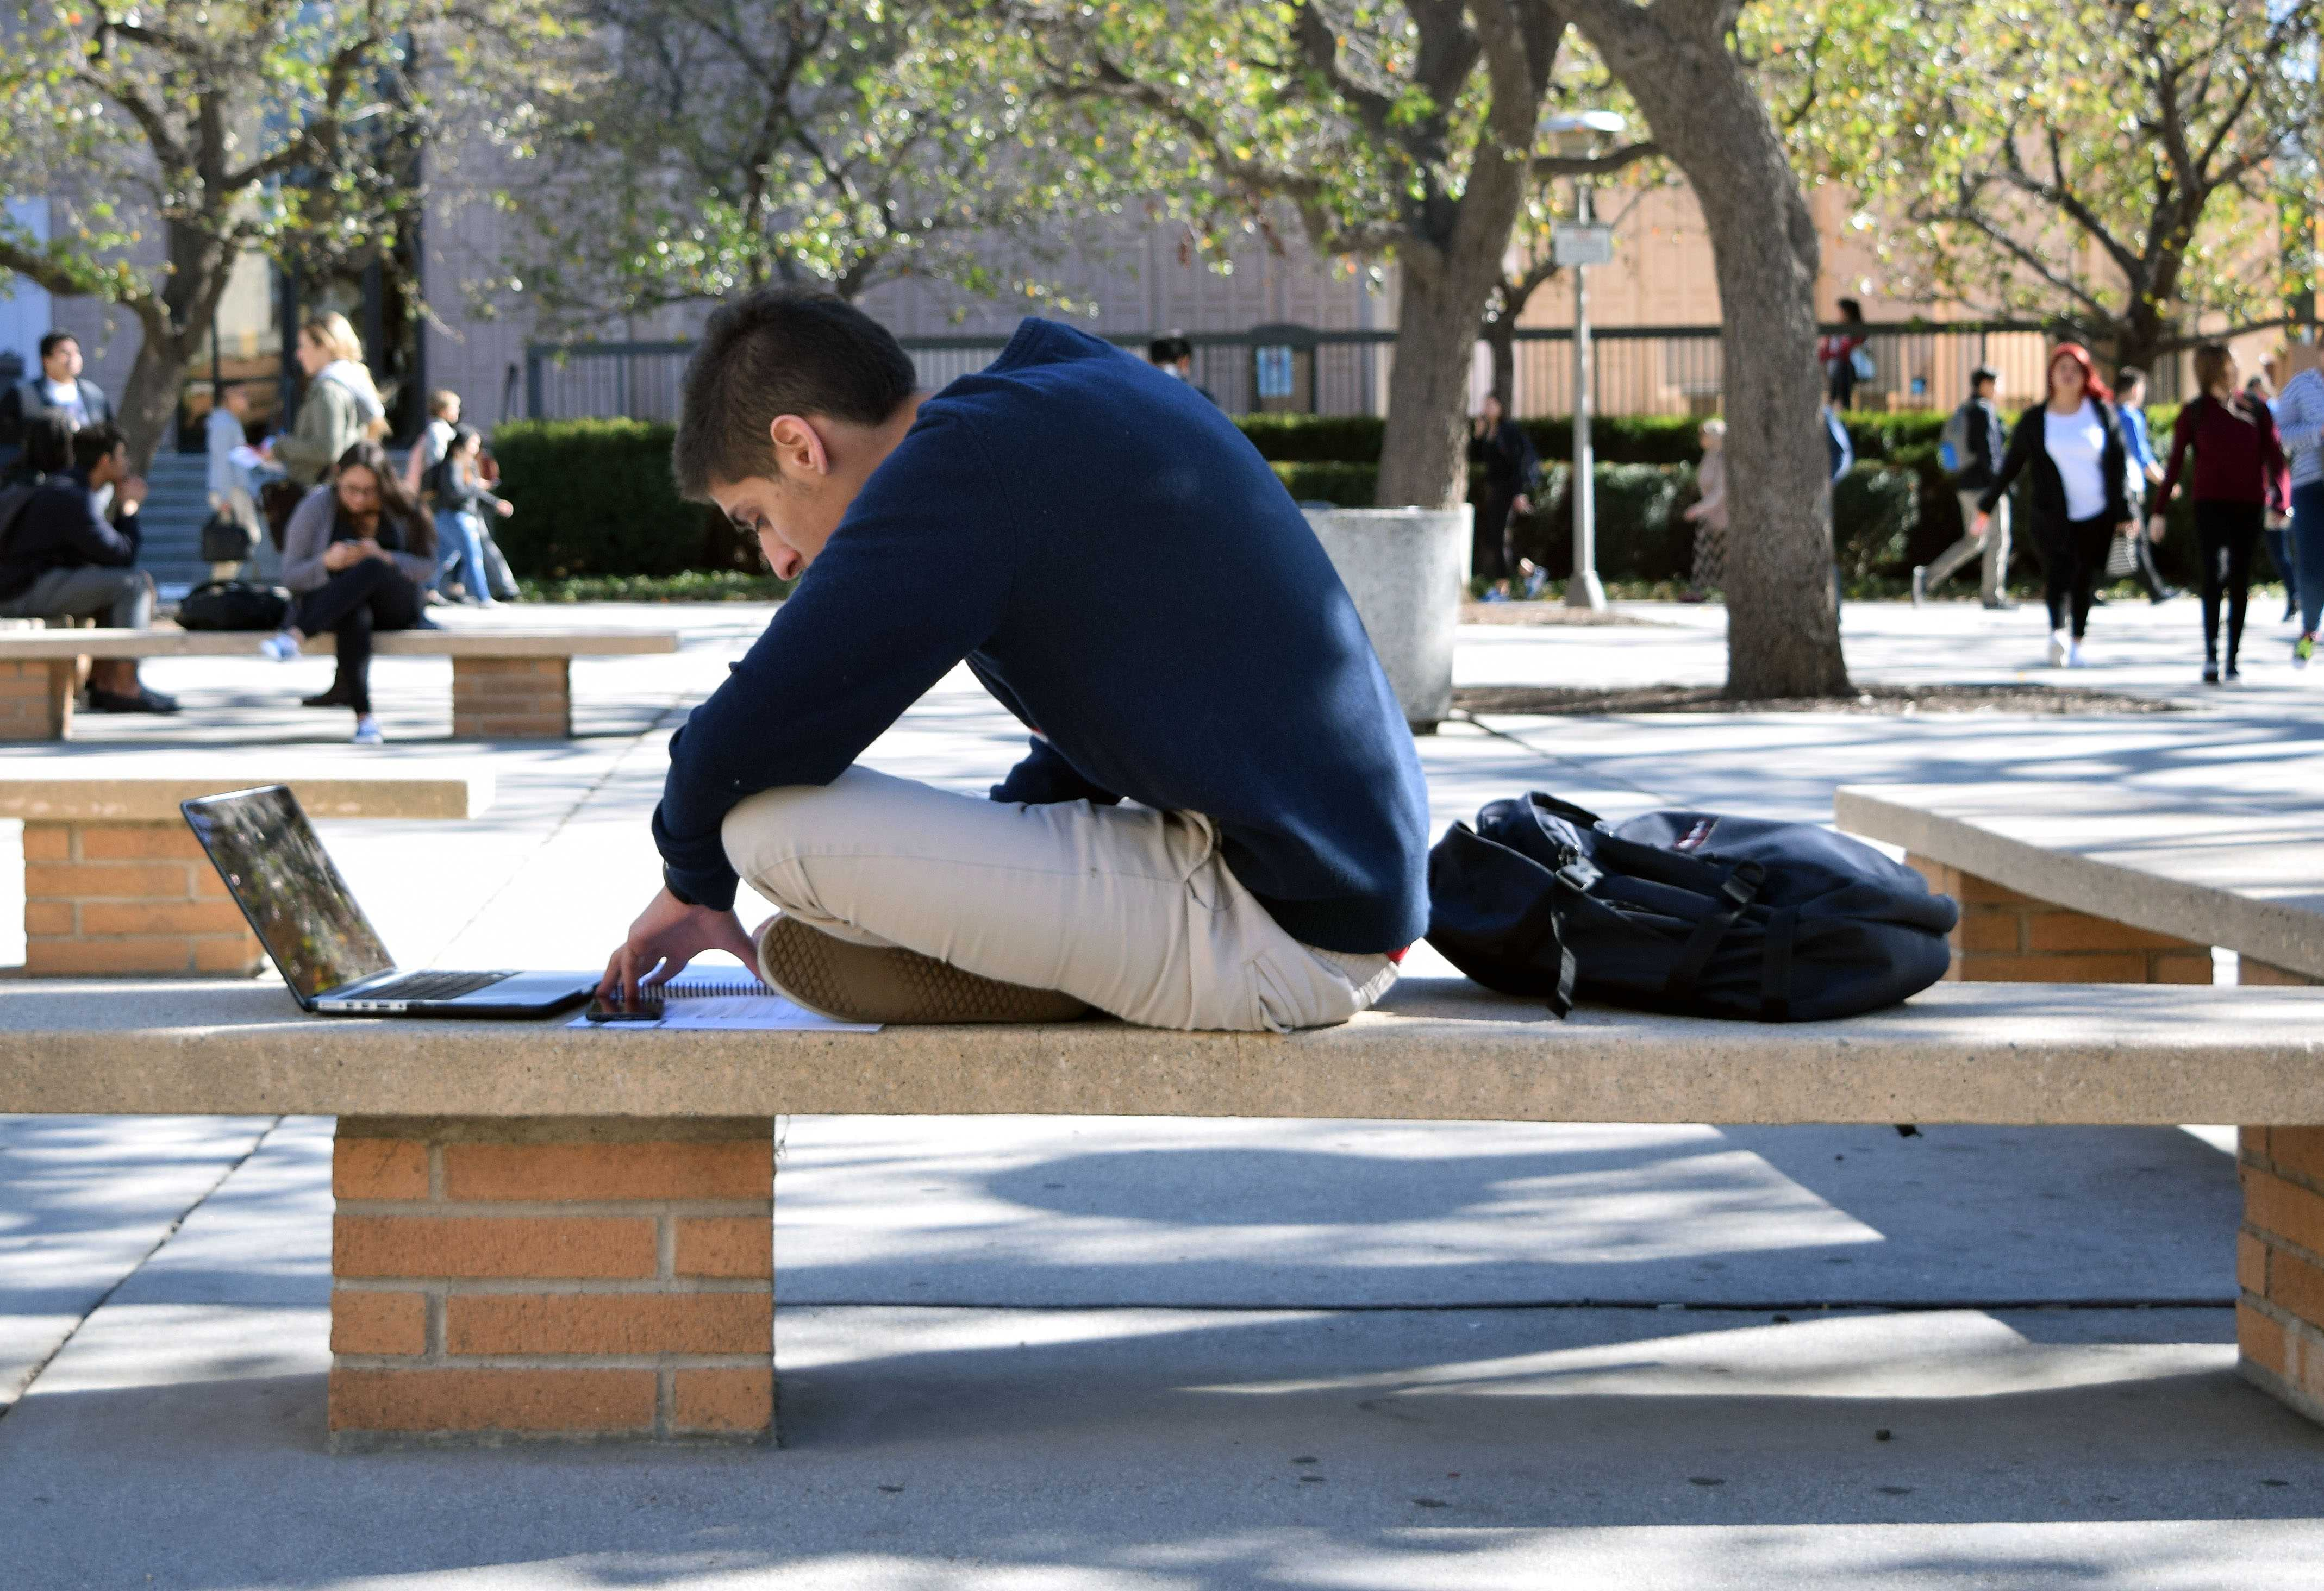 CSUN students share advice, campus events to help conquer senioritis